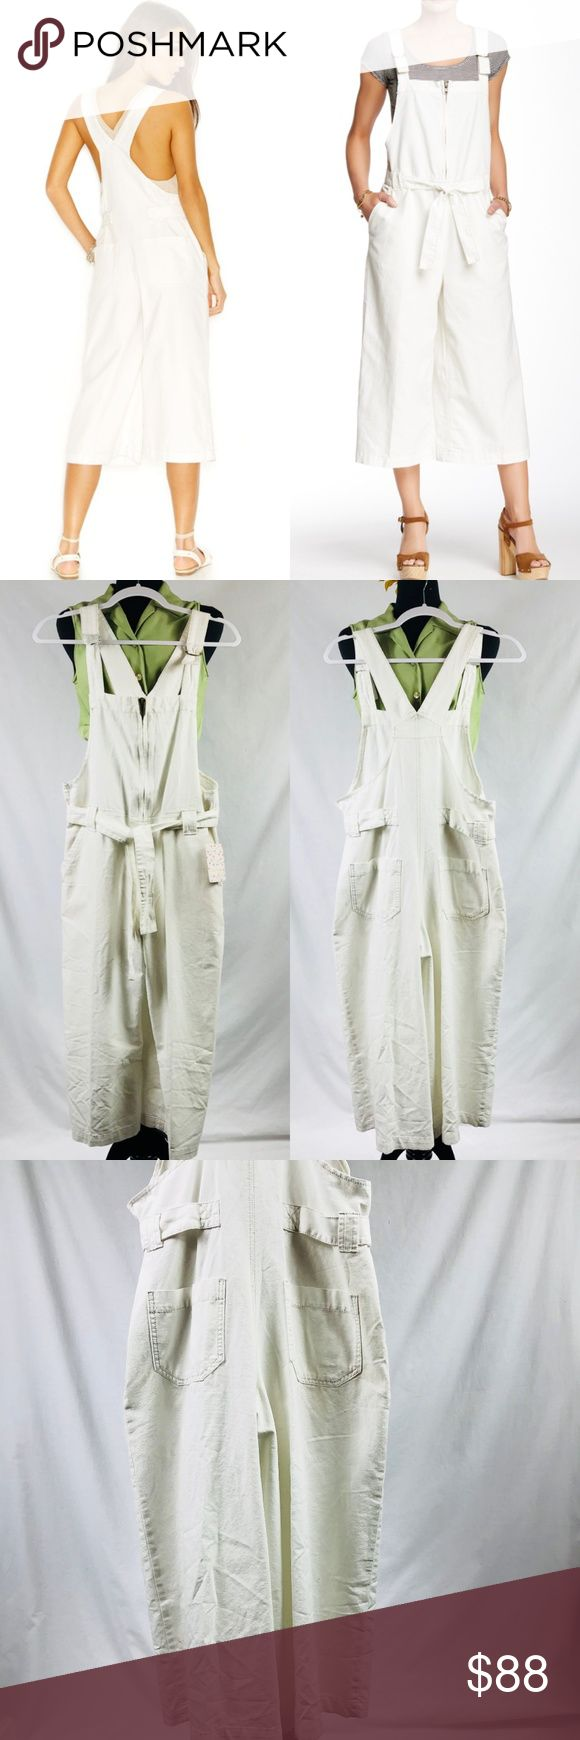 """Free People Canvas Wide Leg Overall in Ivory $148 Change up your denim game with these cute Denim Overalls. Structured cotton overall flaunts a relaxed fit, wide leg, and self-tie belt. Adjustable D-ring shoulder straps. Front zip closure. Belt loop waist attached tie detail. Slant hand pockets.Rear patch pockets.Wide straight leg. 100% cotton. Machine wash cold, tumble dry low. Imported. Approx. Measurements: Inseam: 20"""" / Overall length 45-48"""" Measurements were taken using size XS (Women's…"""